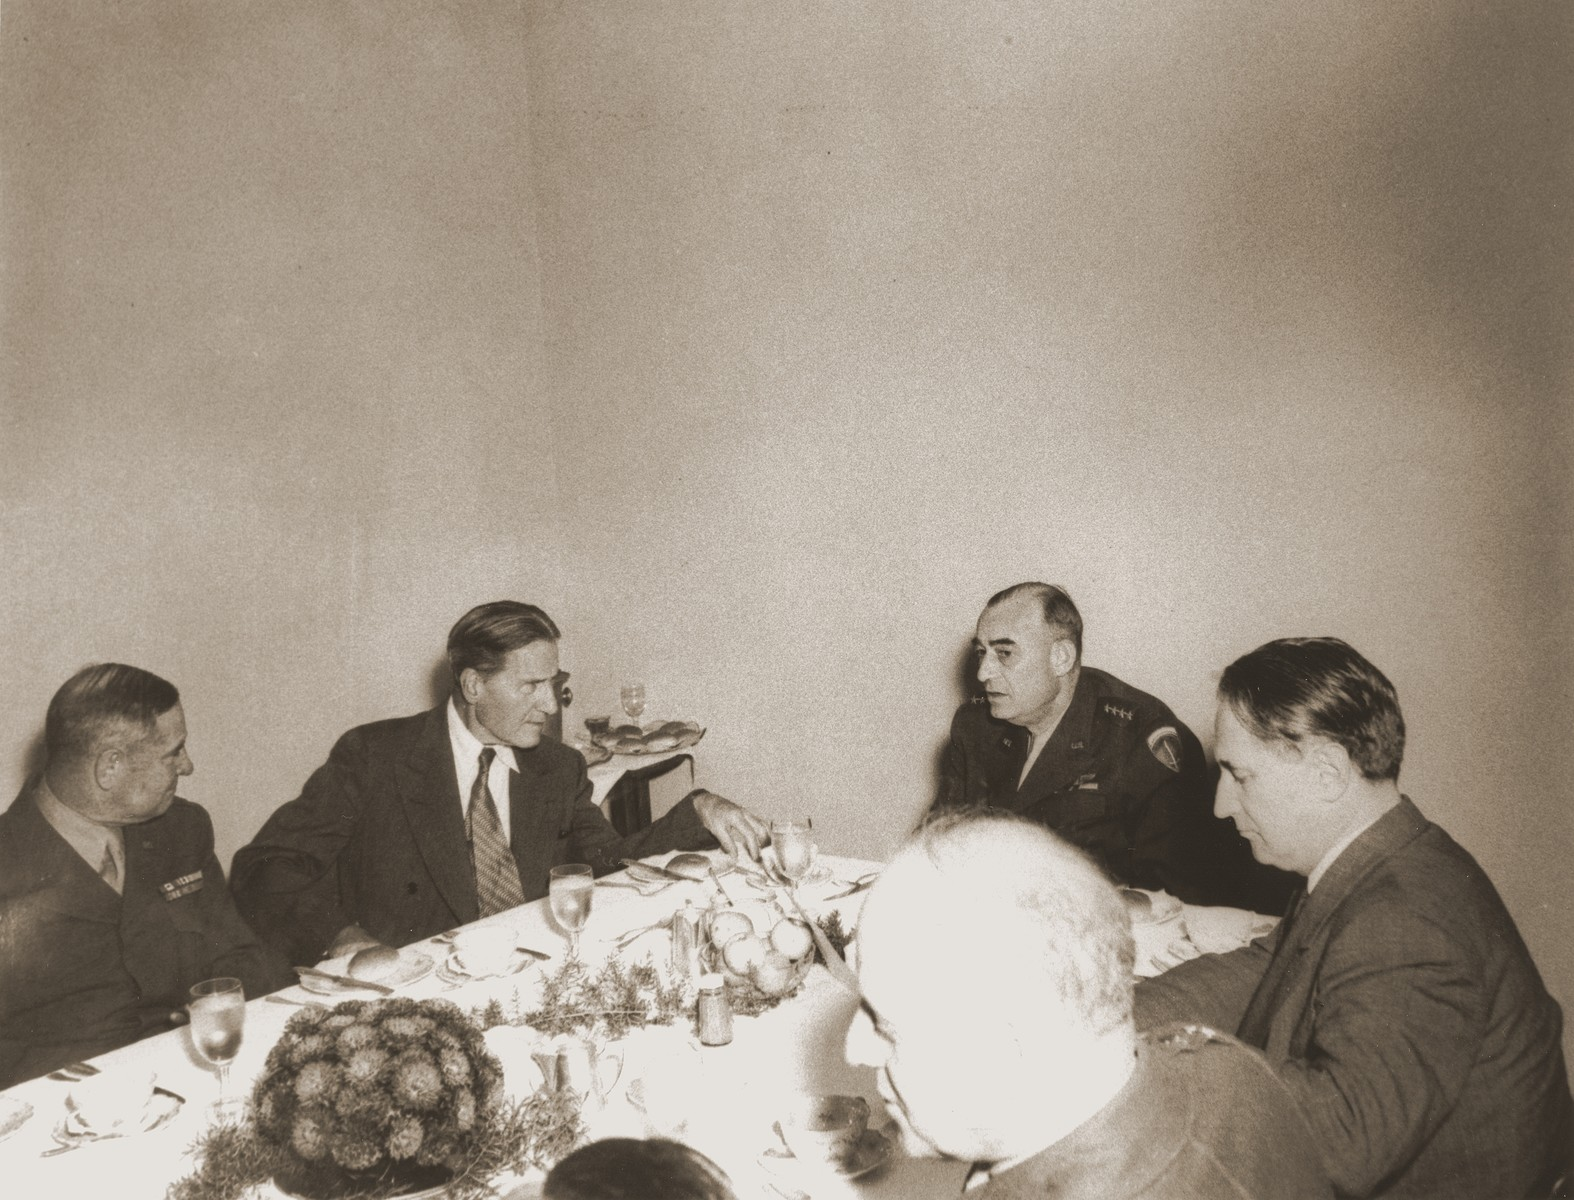 Visiting American Jewish leaders meet over dinner with the commanders of the American Army of Occupation in Germany.  The meeting took place at military headquarters located in the former I.G. Farben facility in Frankfurt am Main.  Pictured clockwise from the left are: unknown; Rabbi Stephen Wise; General Joseph McNarney; Nahum Goldmann; and General Clarence Huebner.